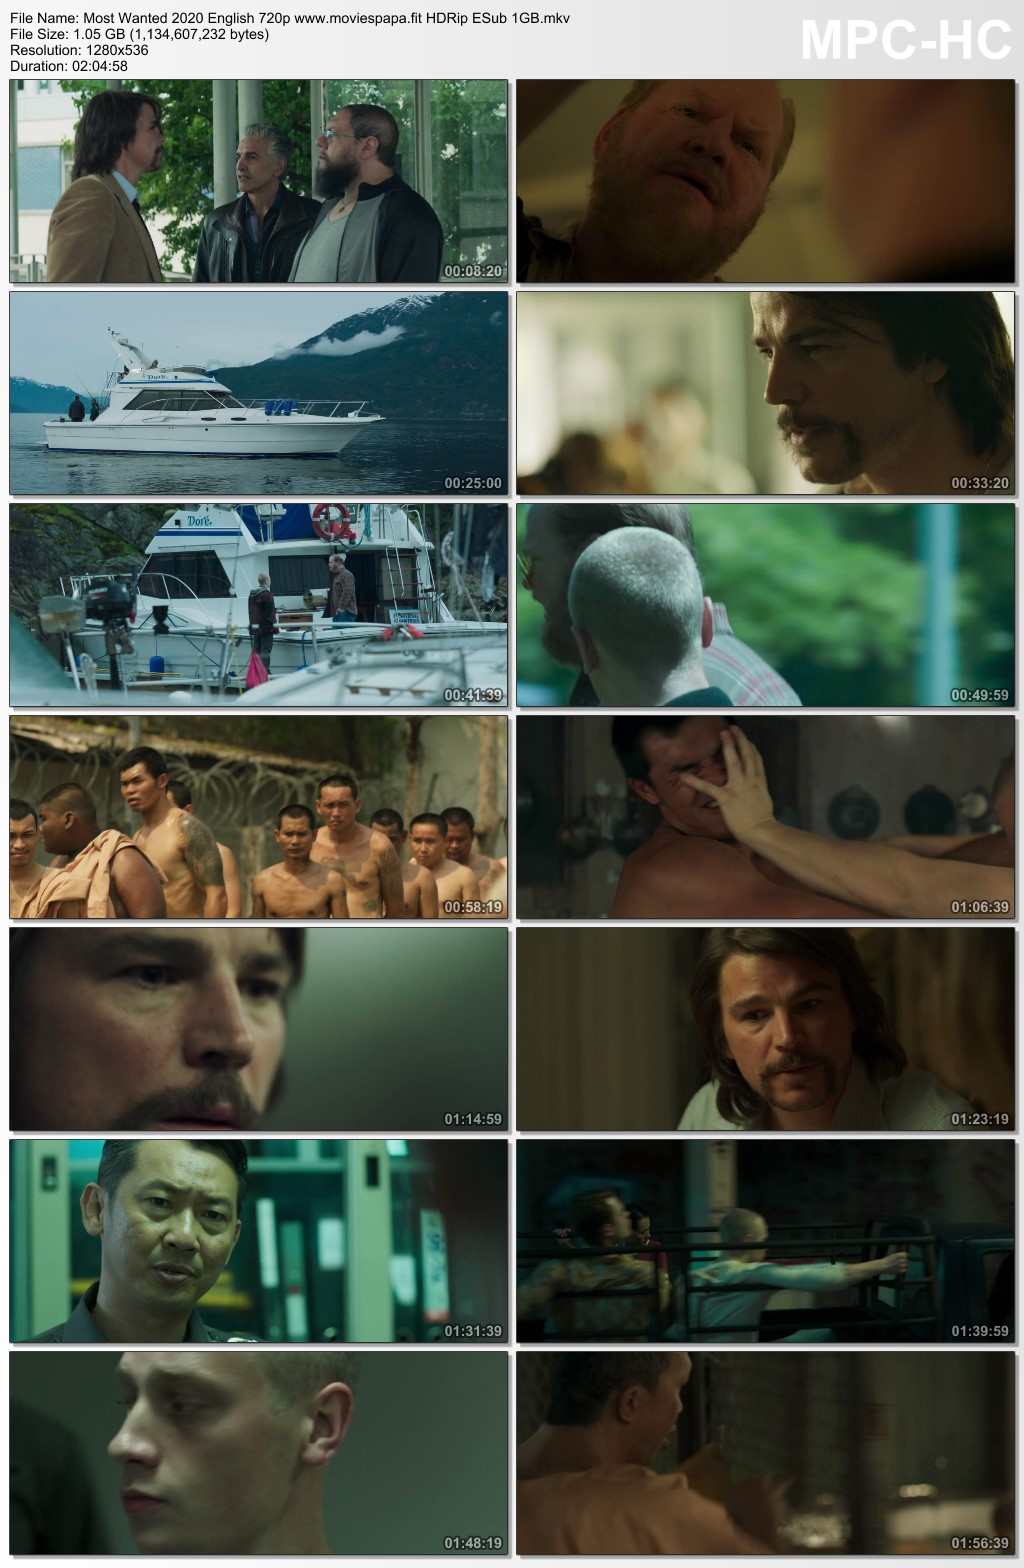 Most Wanted 2020 English Movie 720p HDRip ESub 1.1GB Download